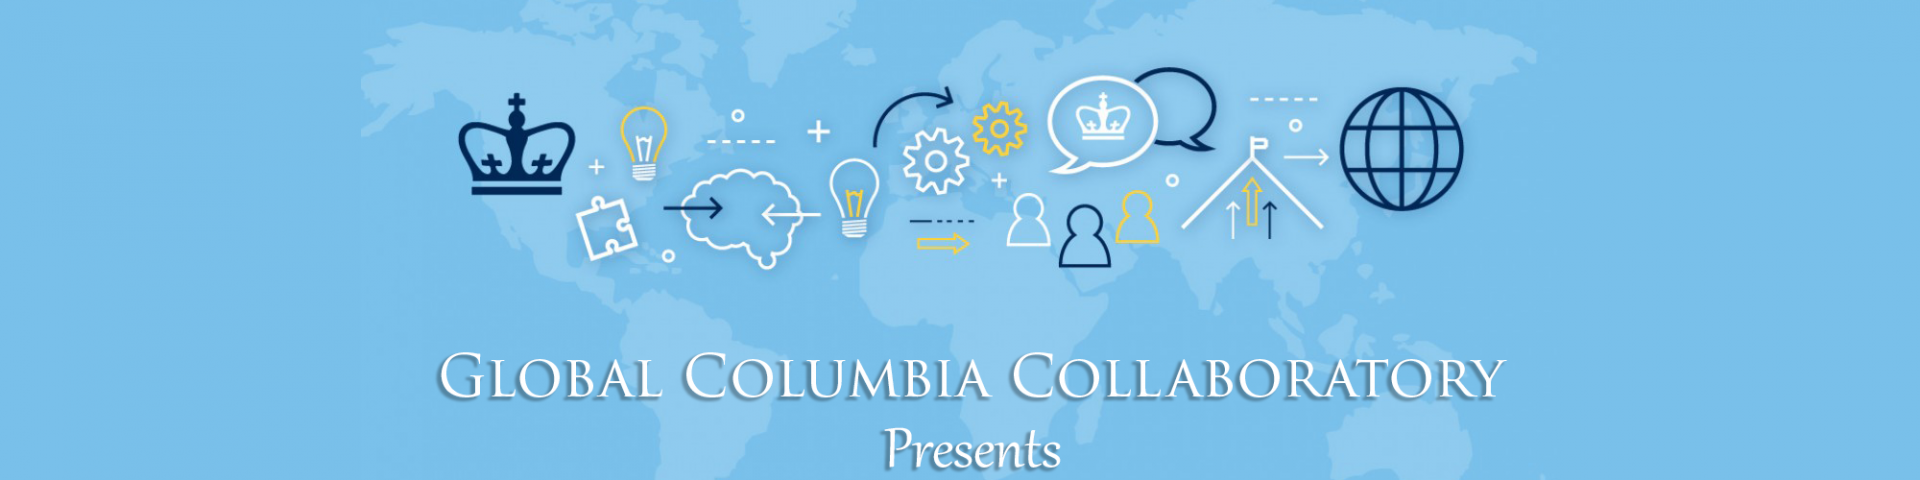 Global Columbia Collaboratory